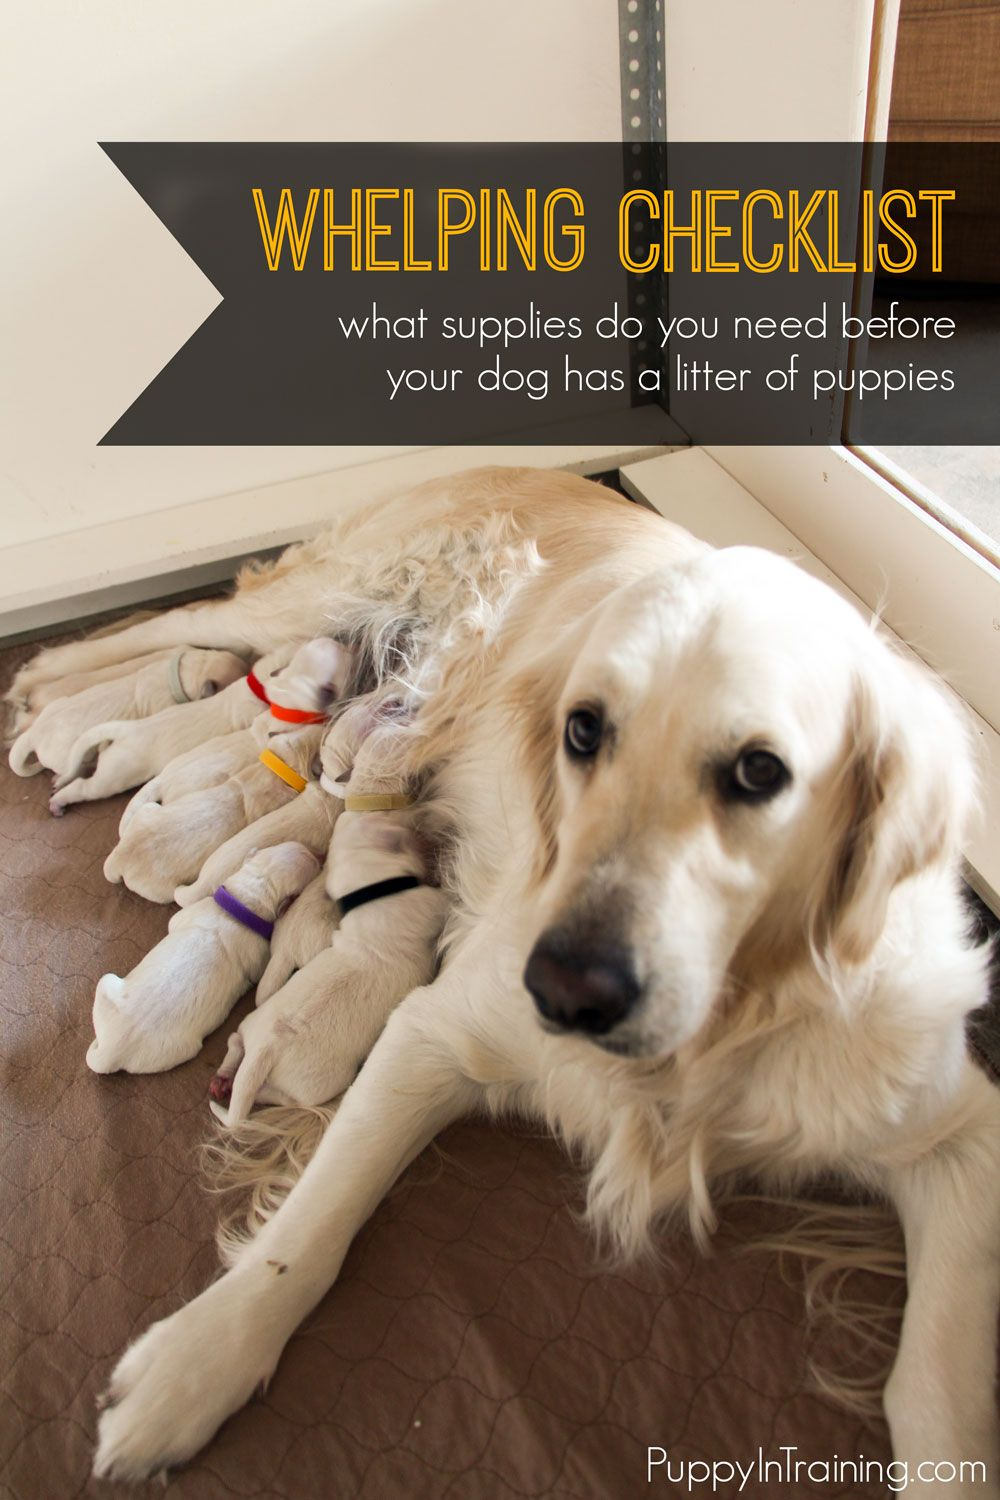 Whelping Checklist What Supplies Do You Need Before Your Dog Has